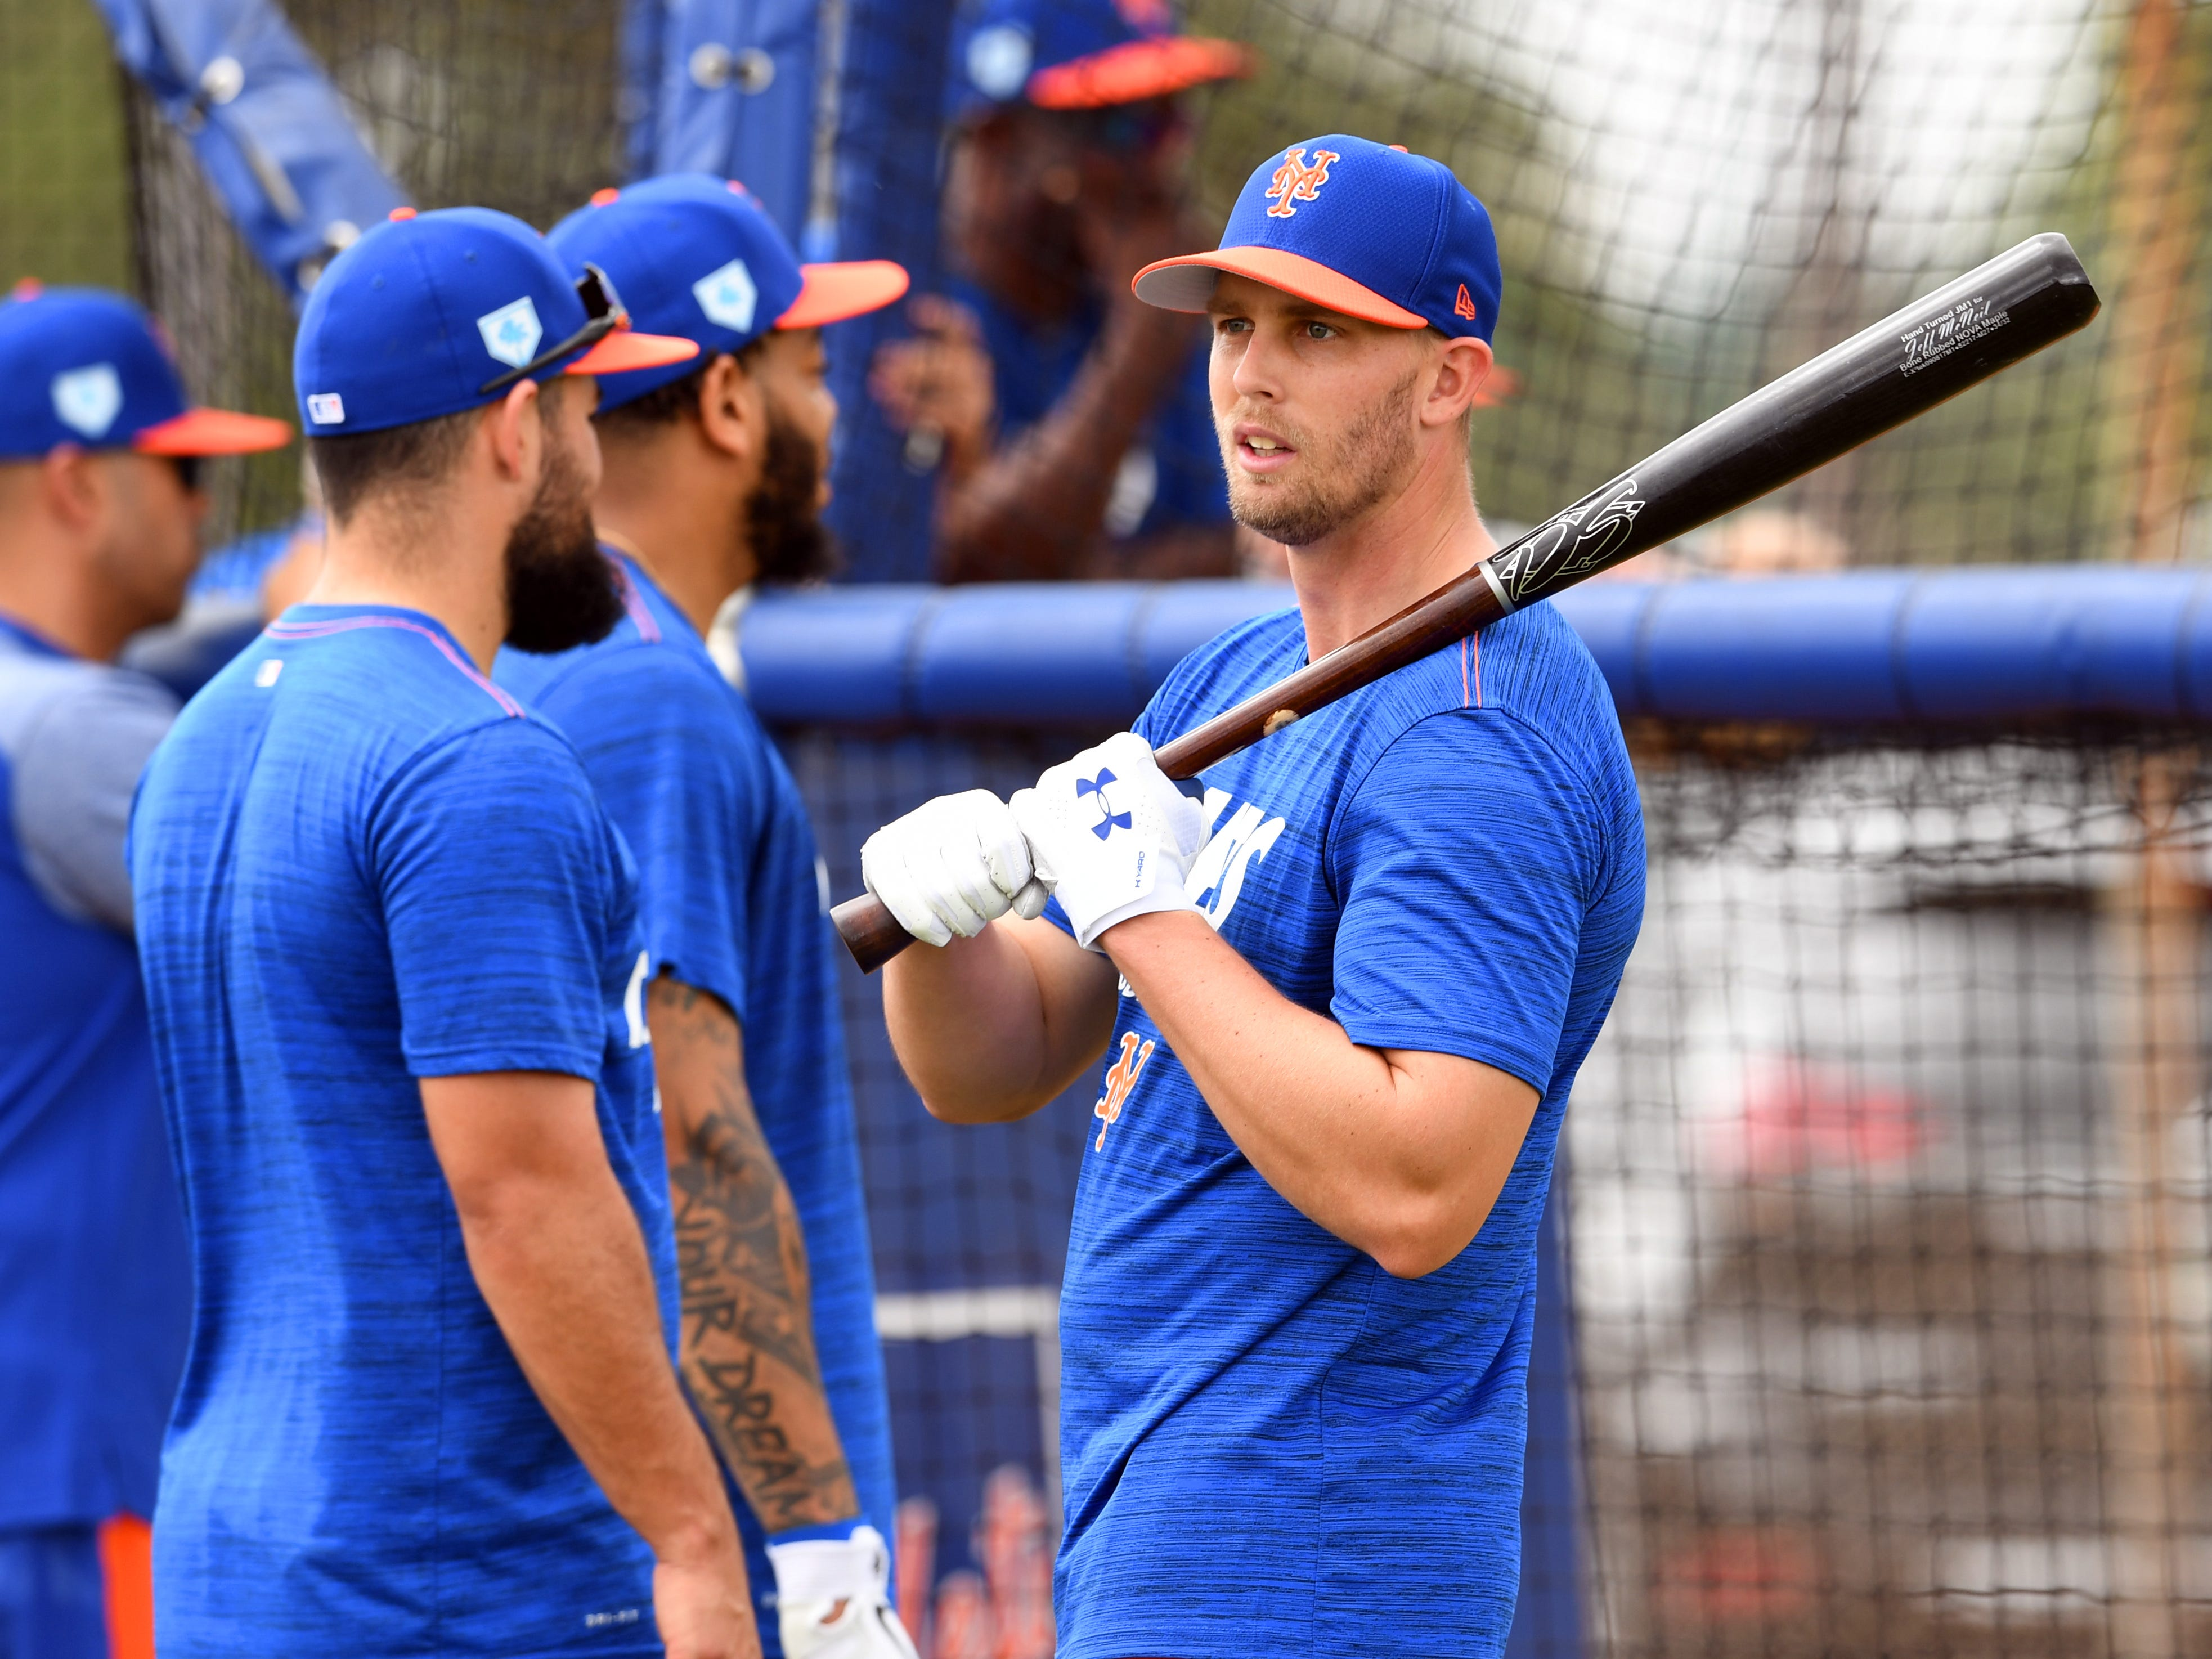 New York Mets infielder Jeff McNeil stands in line for batting practice on Monday, Feb. 11, 2019 during an optional practice with teammates at First Data Field in Port St. Lucie. The Mets will host the Atlanta Braves on Feb. 23 for their first Spring Training game of the year.